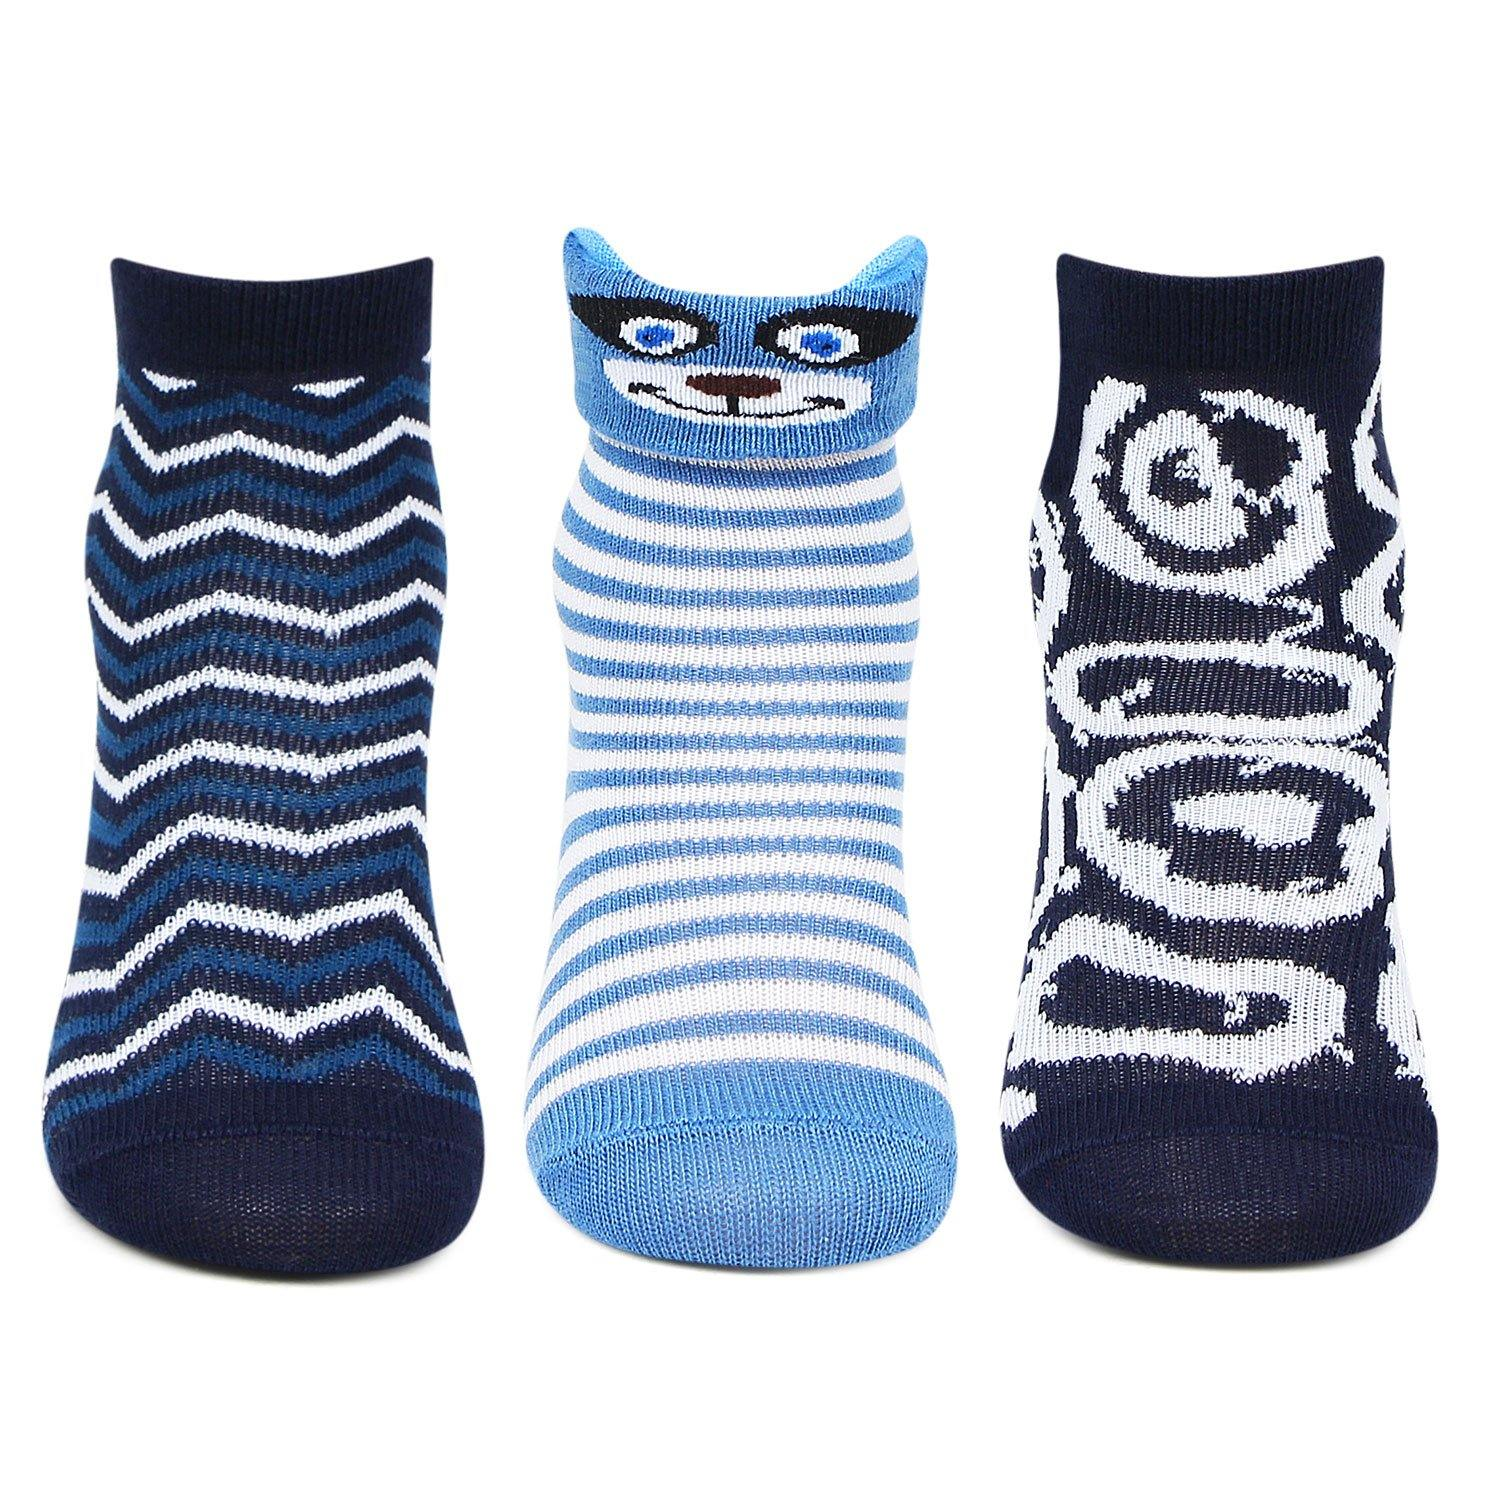 Poochie Baby Infant Multi pack Socks for Boys -Pack Of 3